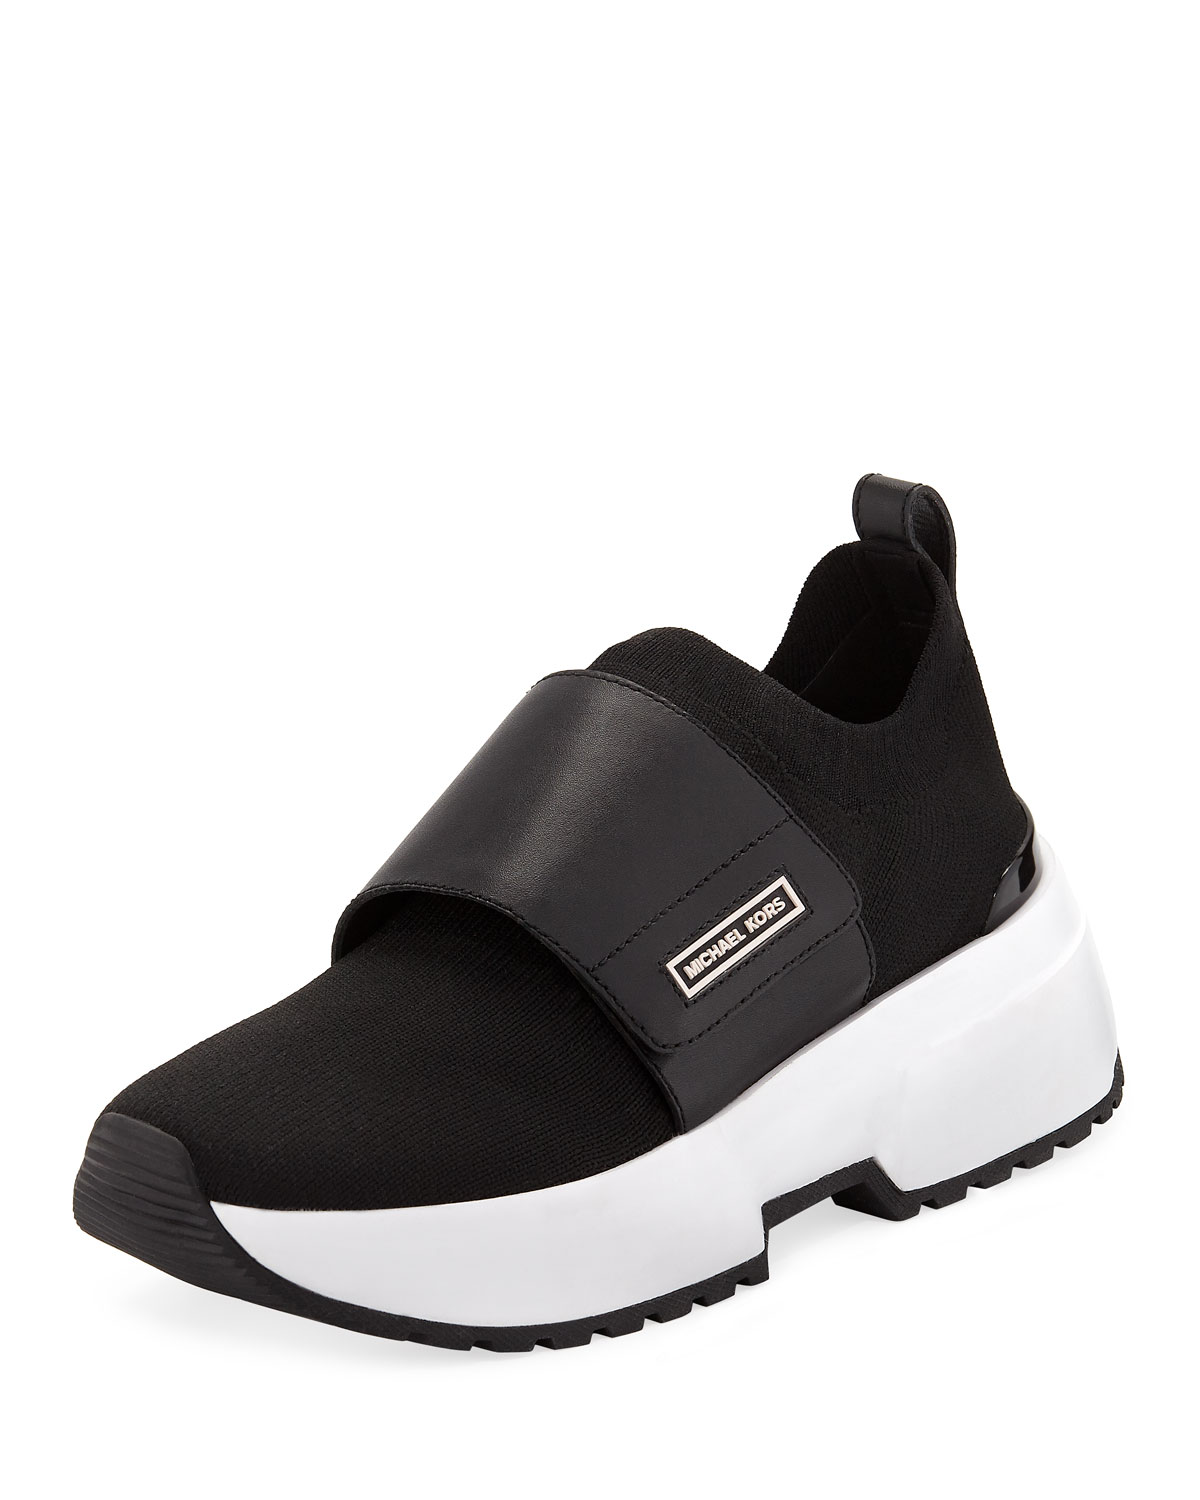 MICHAEL MICHAEL KORS COSMO KNIT SLIP-ON SNEAKERS